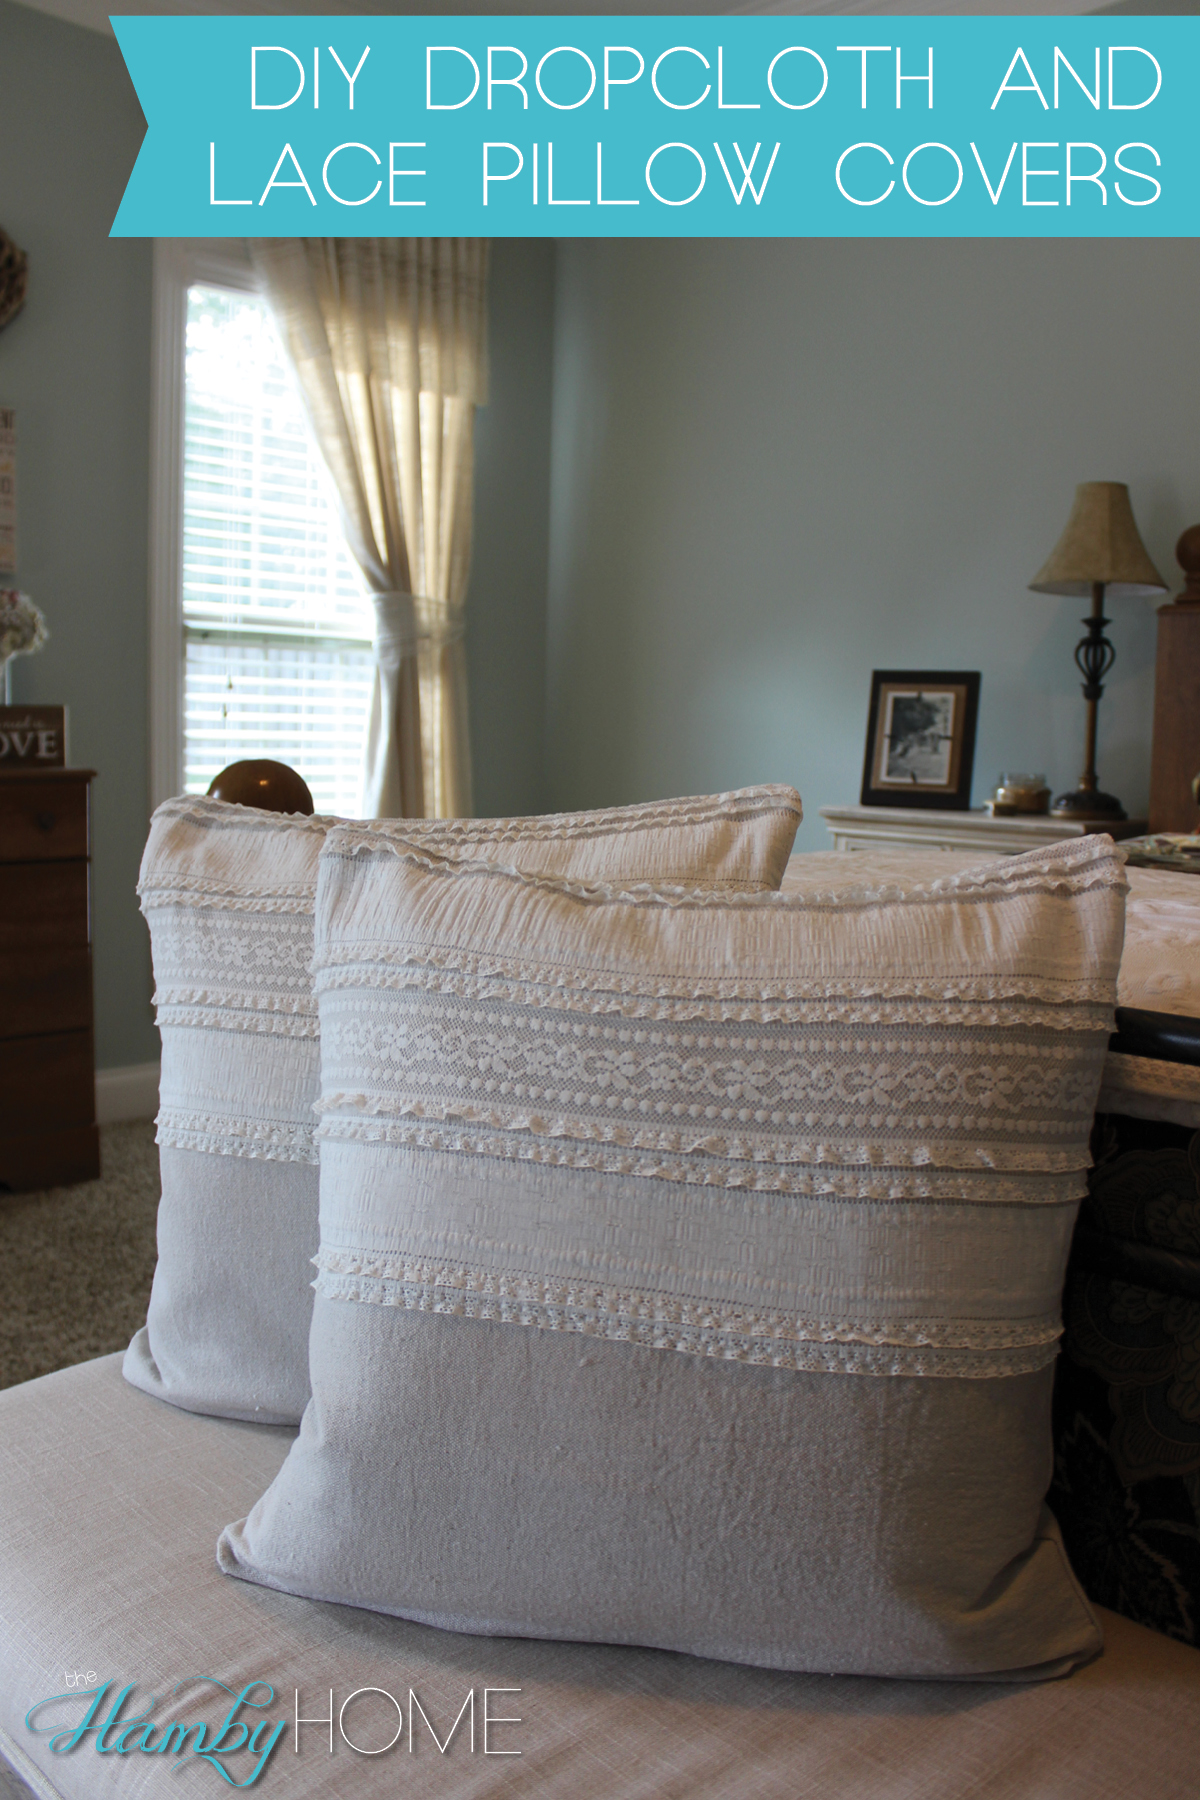 Dy Dropcloth Lace Pillowcover